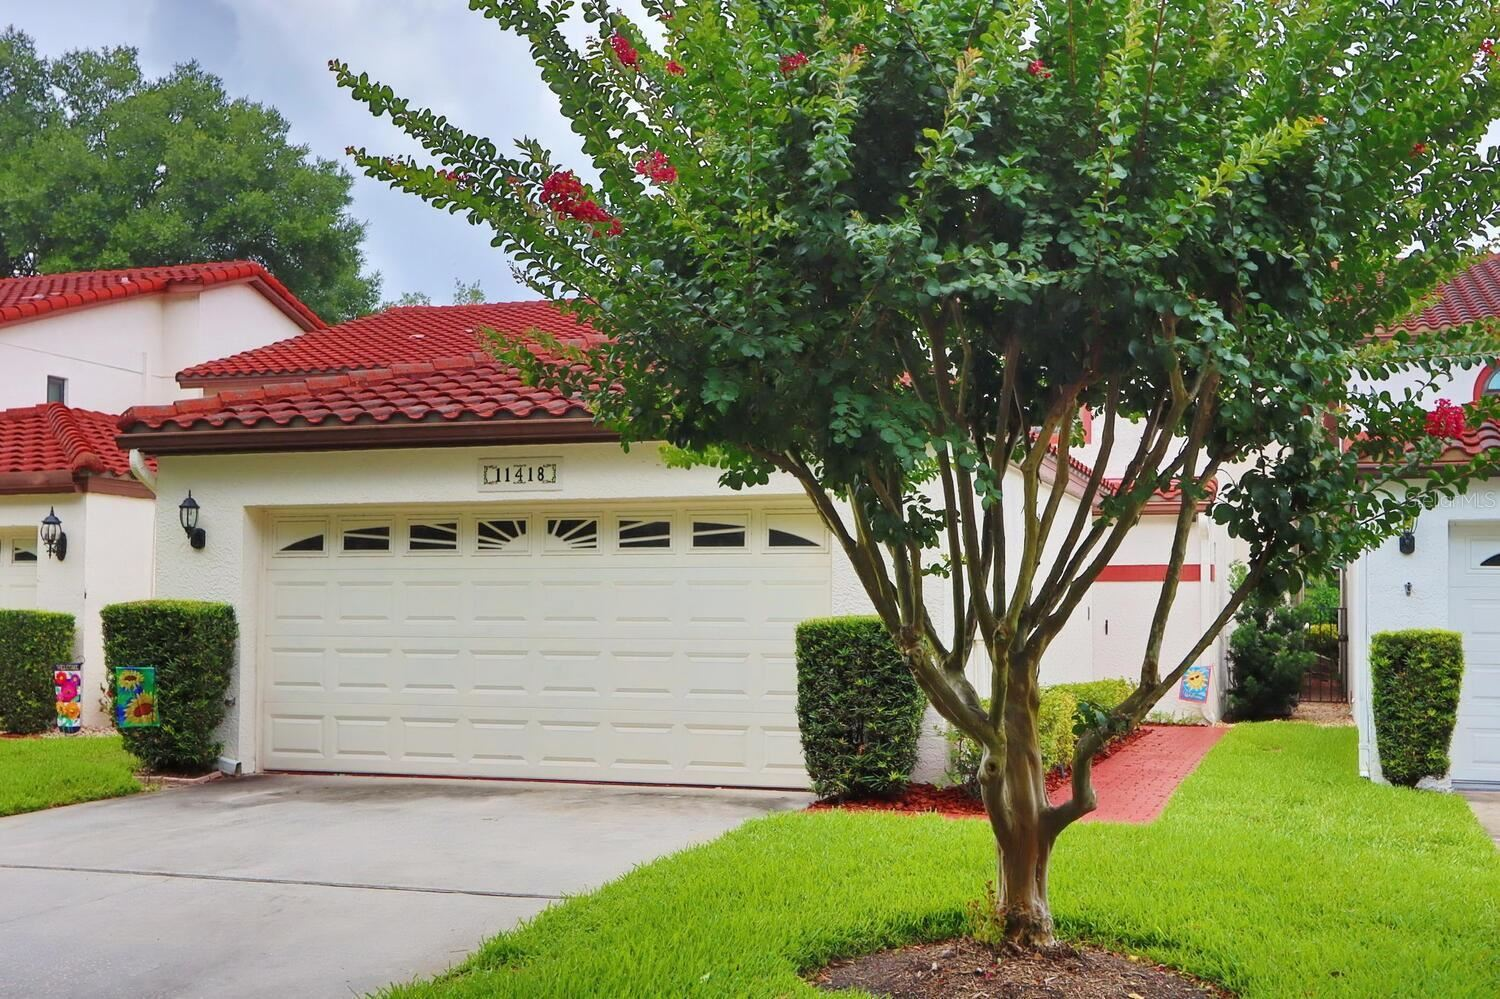 11418 LINARBOR PLACE, Temple Terrace, FL 33617 - MLS#: T3311839